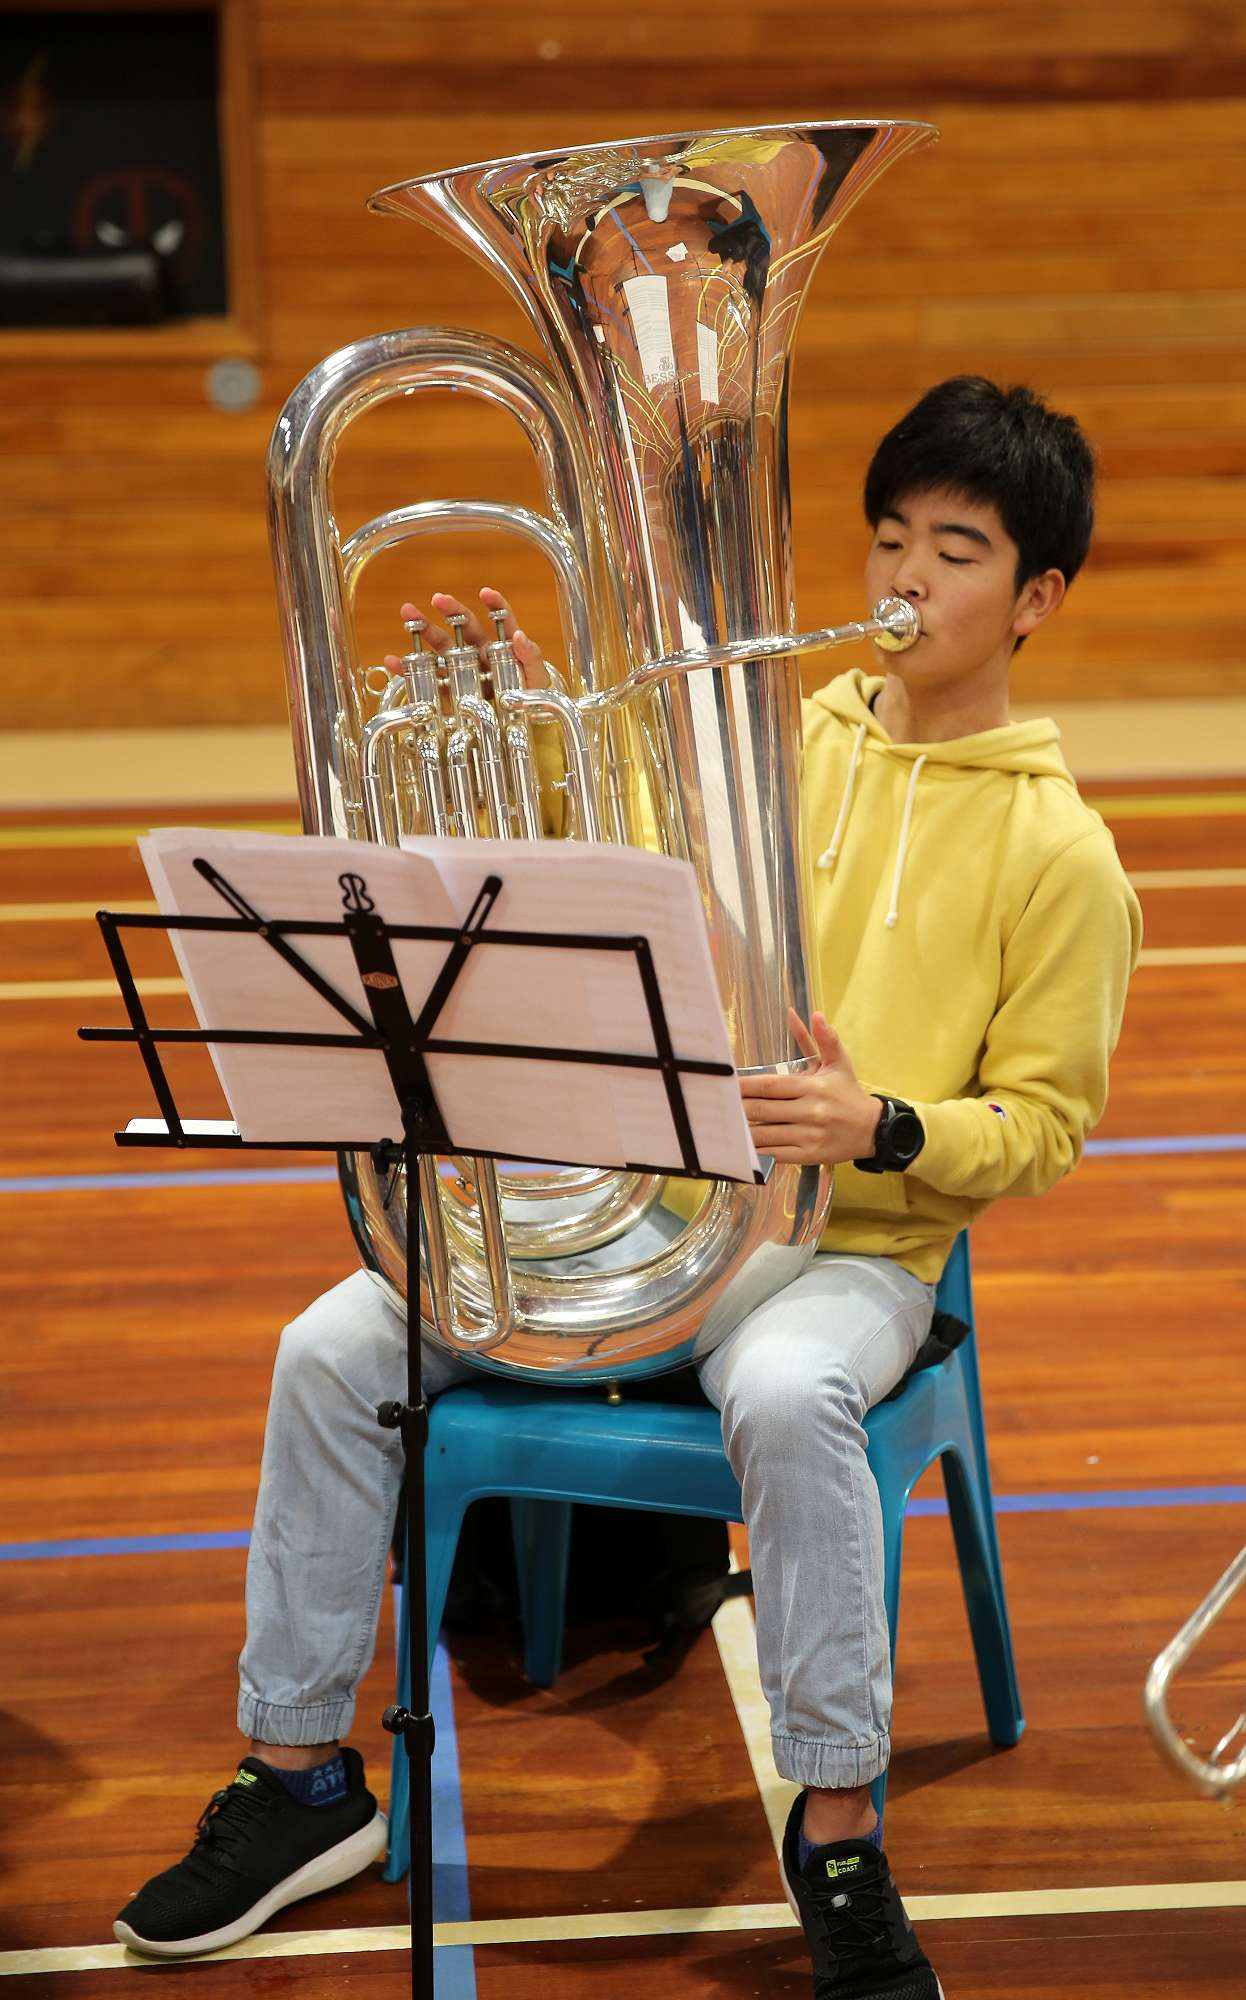 Keigo Itani playing the tuba